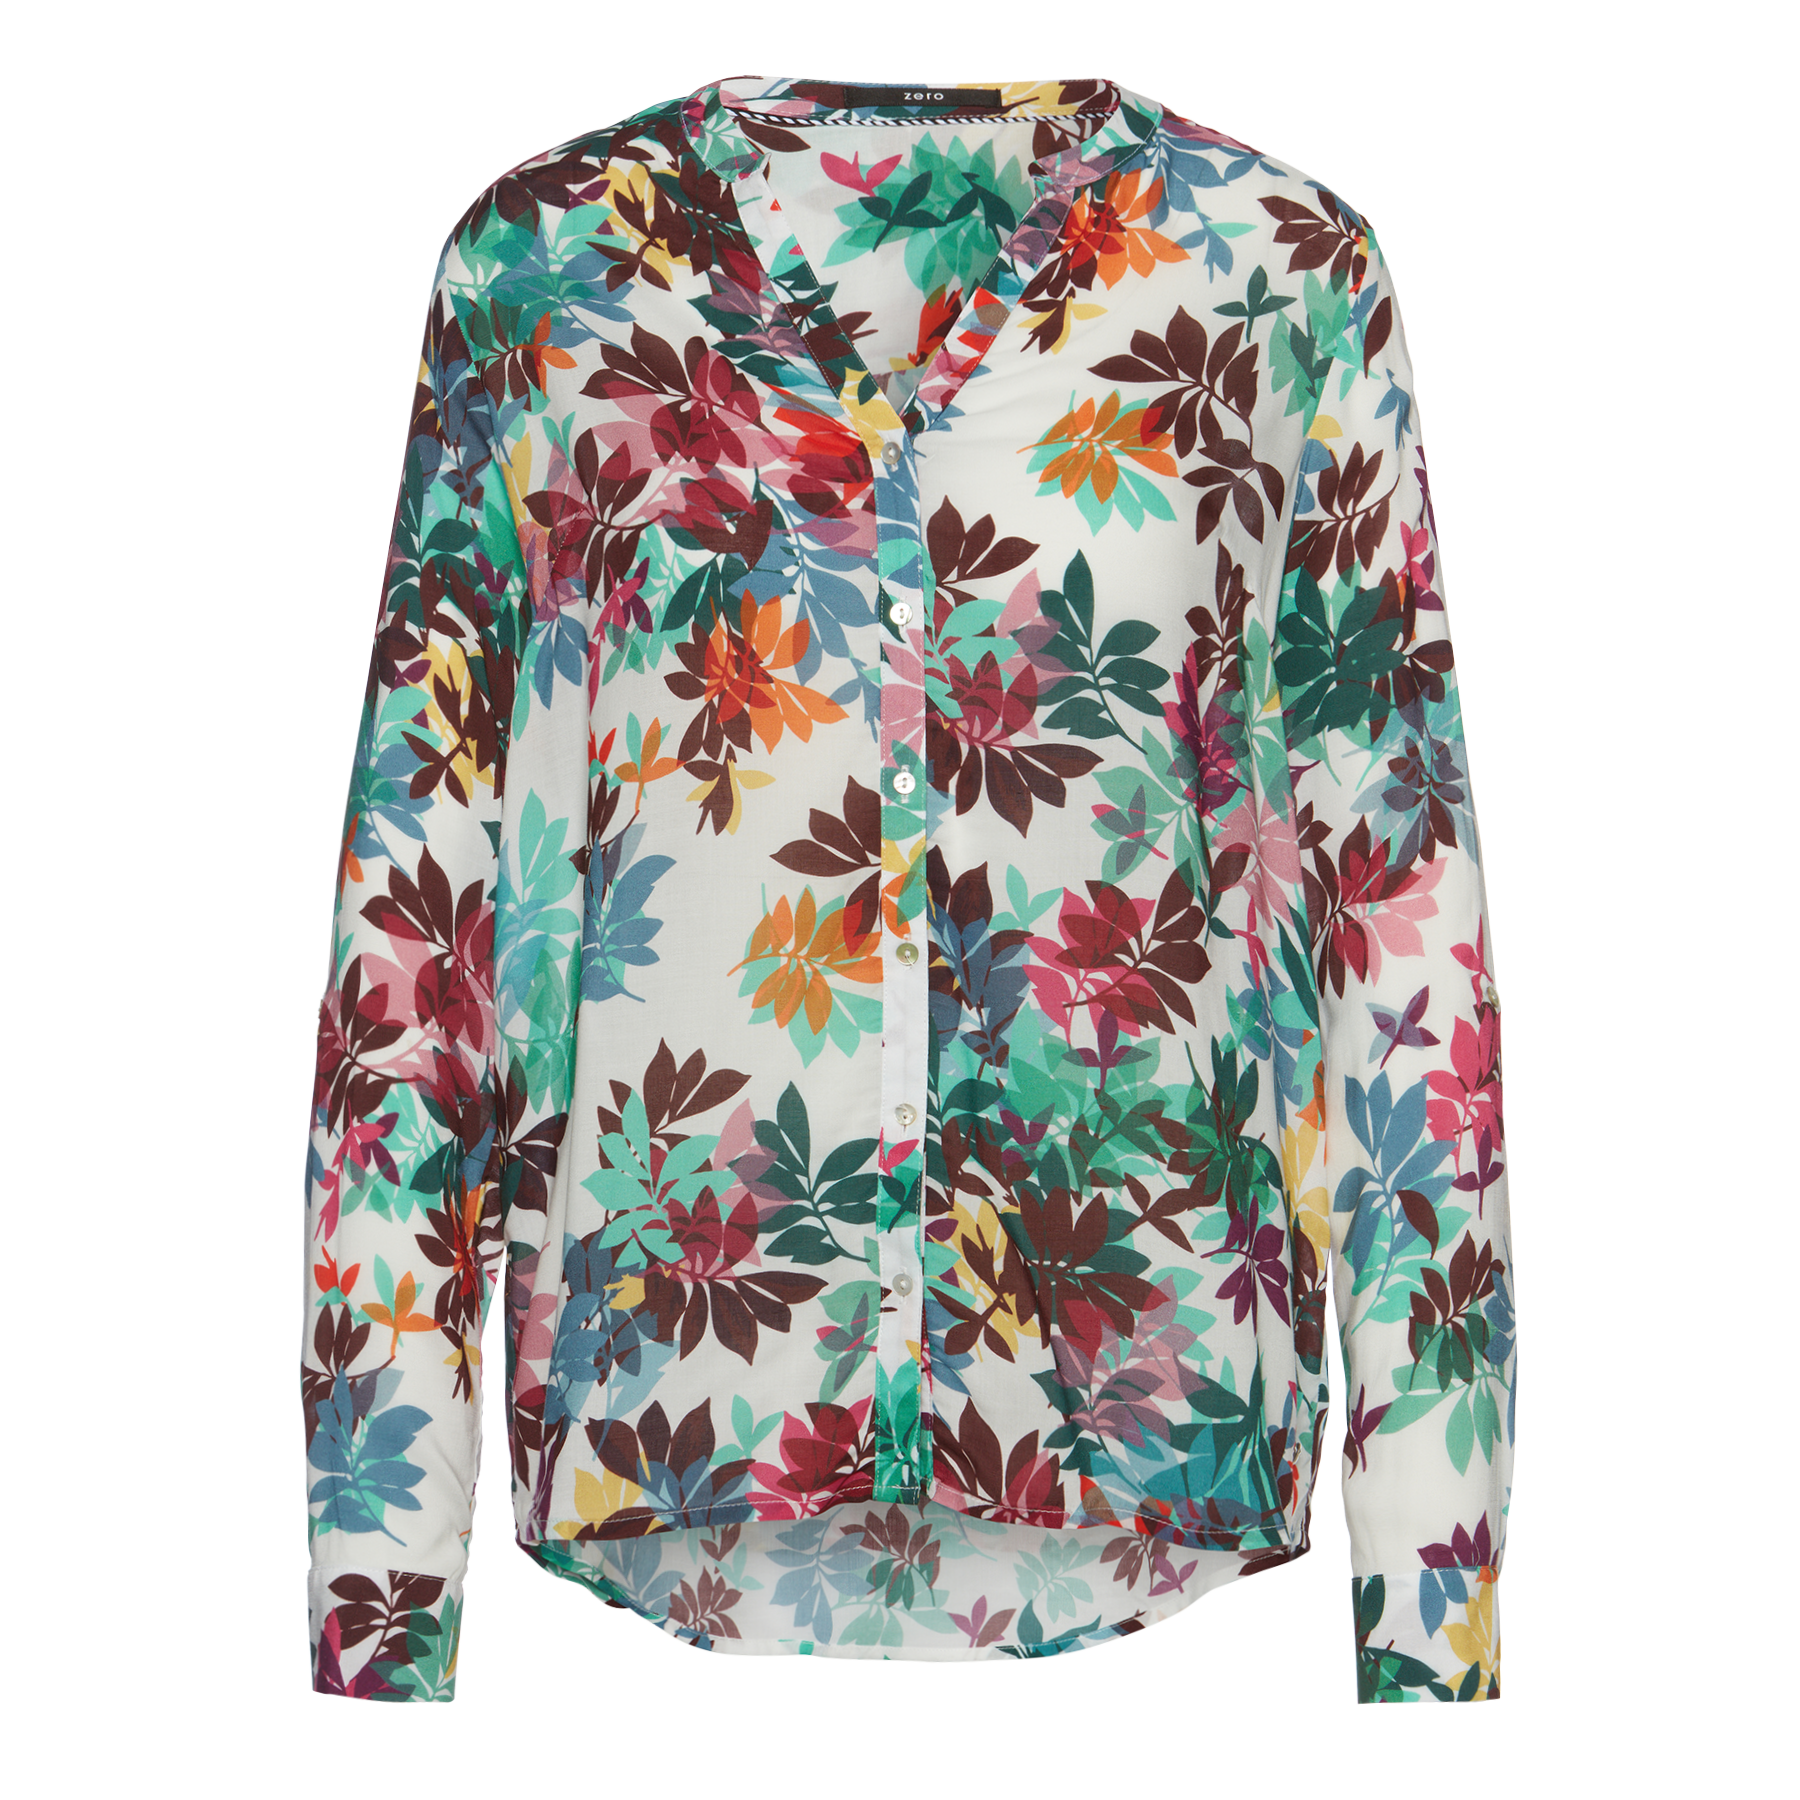 Bluse mit Allover-Print offwhite